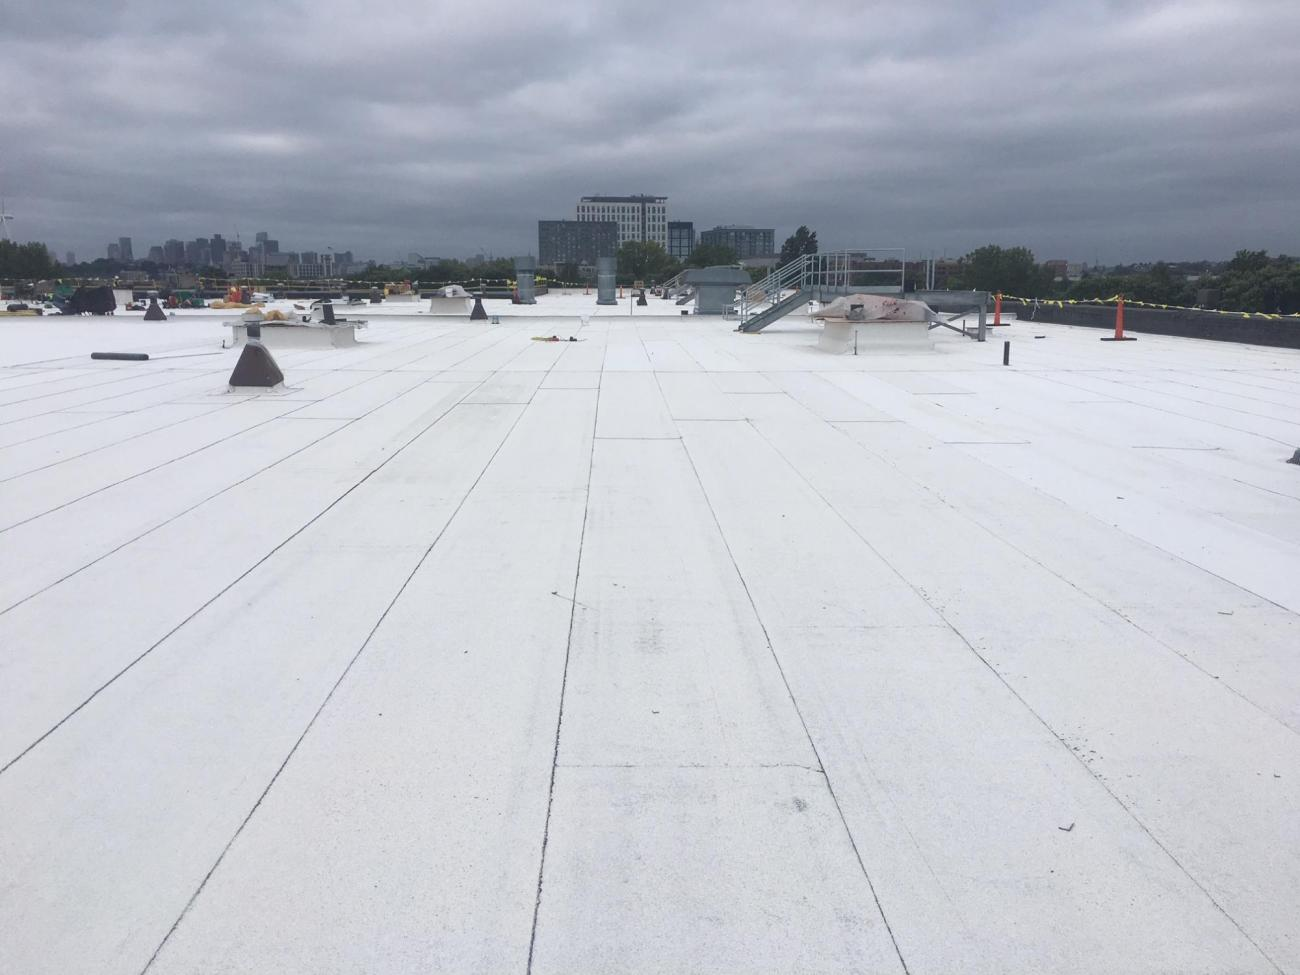 Wellington Maintenance Facility: Roof installation (September 2018)